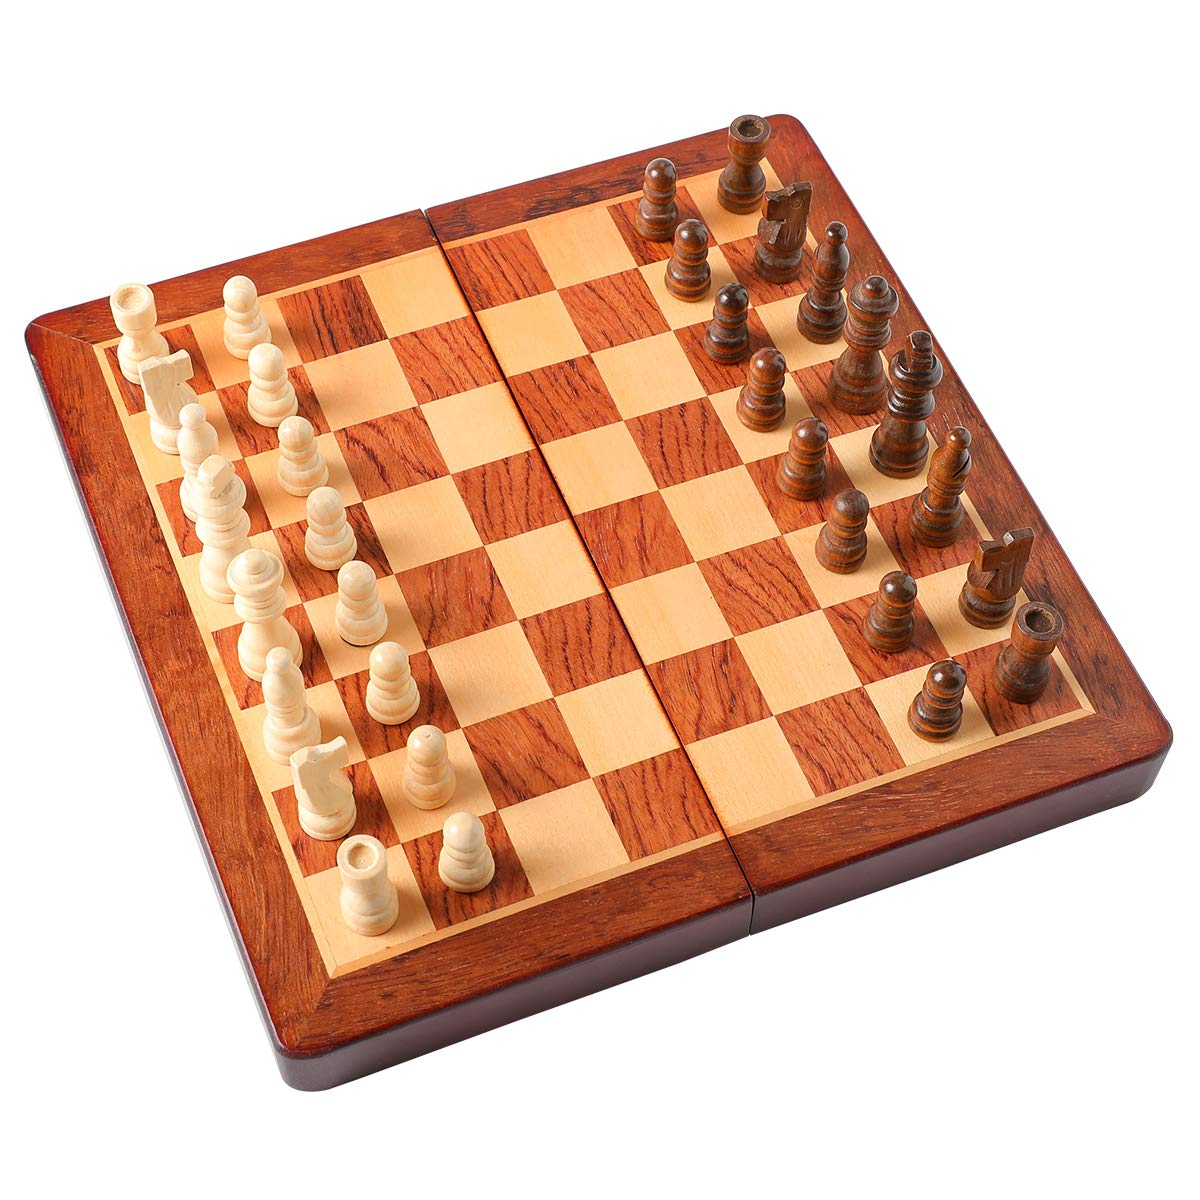 """HOLYKING 9.4"""" Folding Wooden Chess Set - Portable Travel Chess Game Set with Storage Bags"""